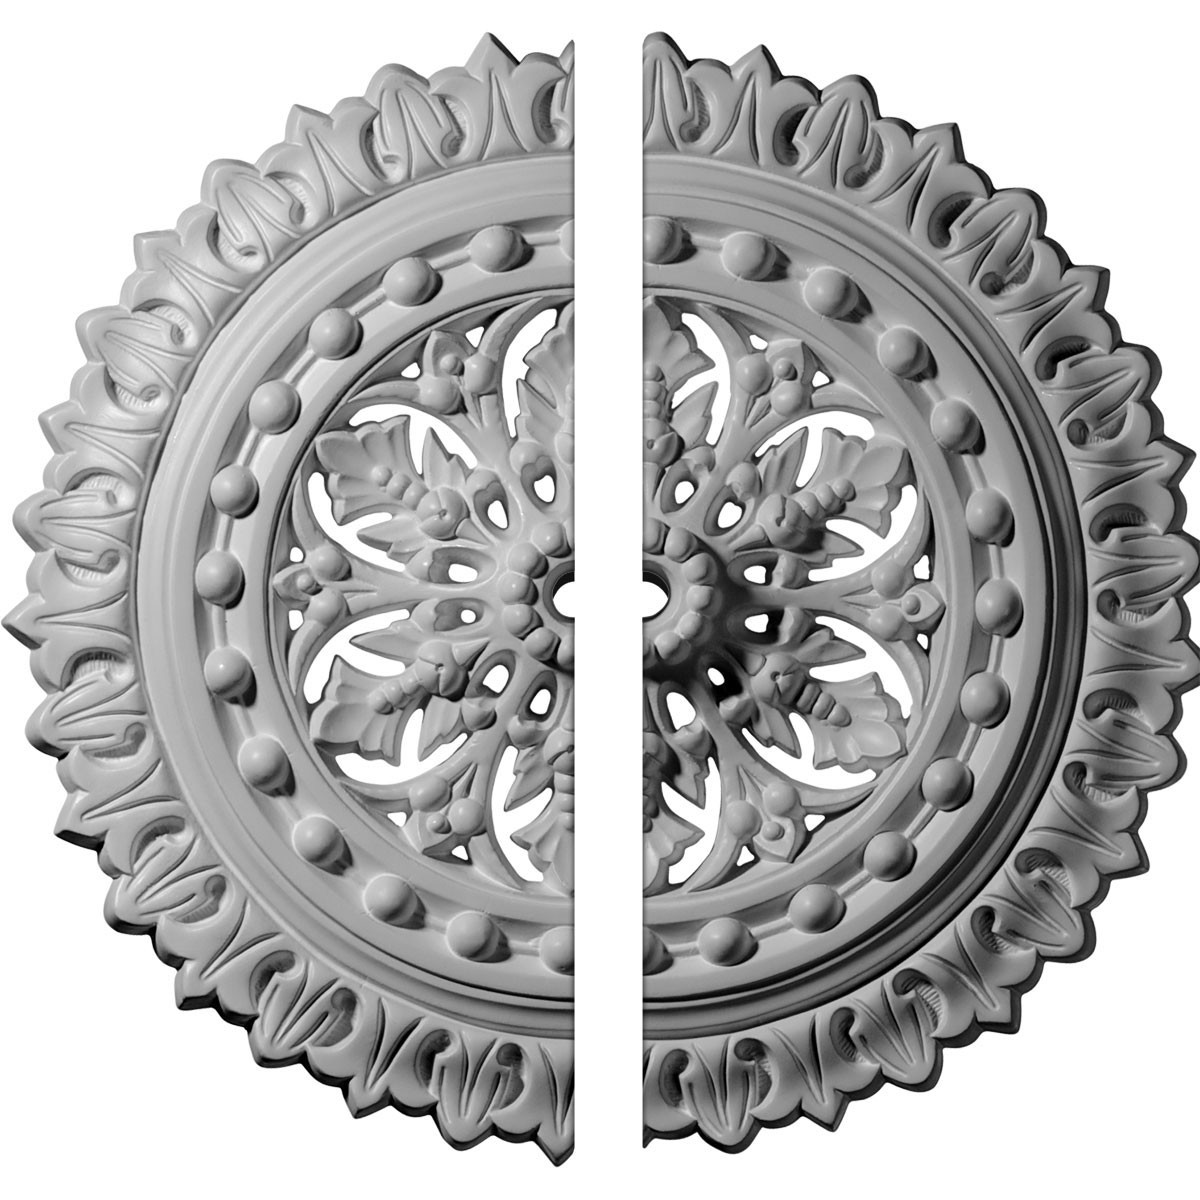 "EM-CM18SK2 - 18 1/2""OD x 7/8""ID x 1 1/2""P Sellek Ceiling Medallion, Two Piece (Fits Canopies up to 1 1/8"")"